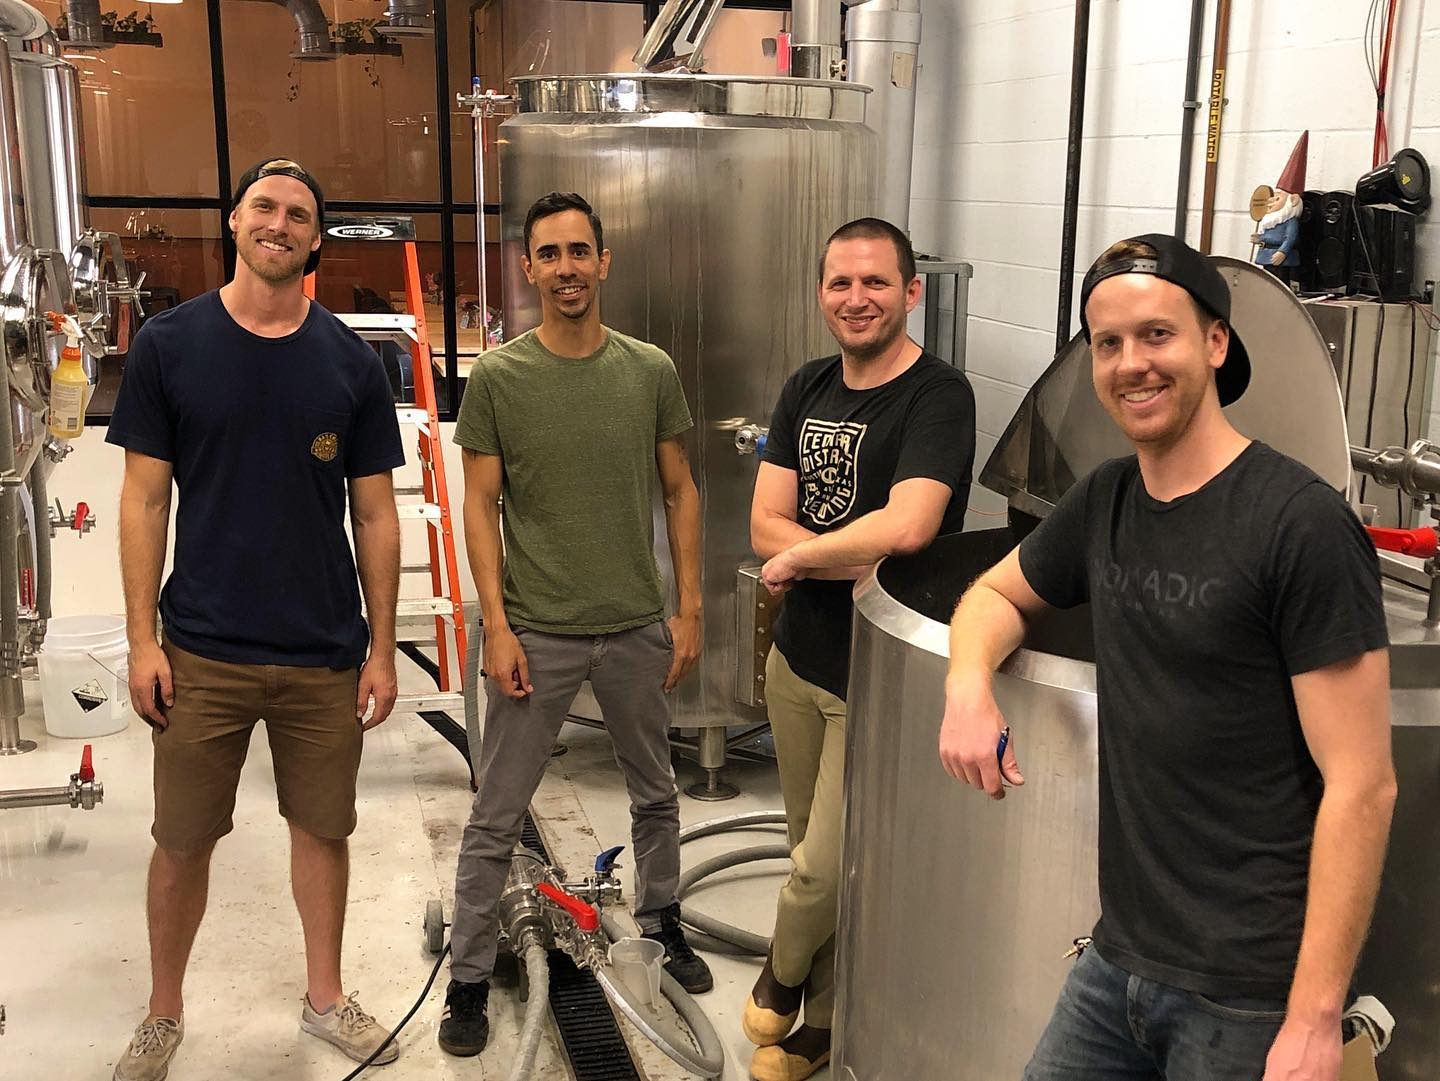 Owners of Nomadic Beerworks and Central District Brewing working in brewhouse